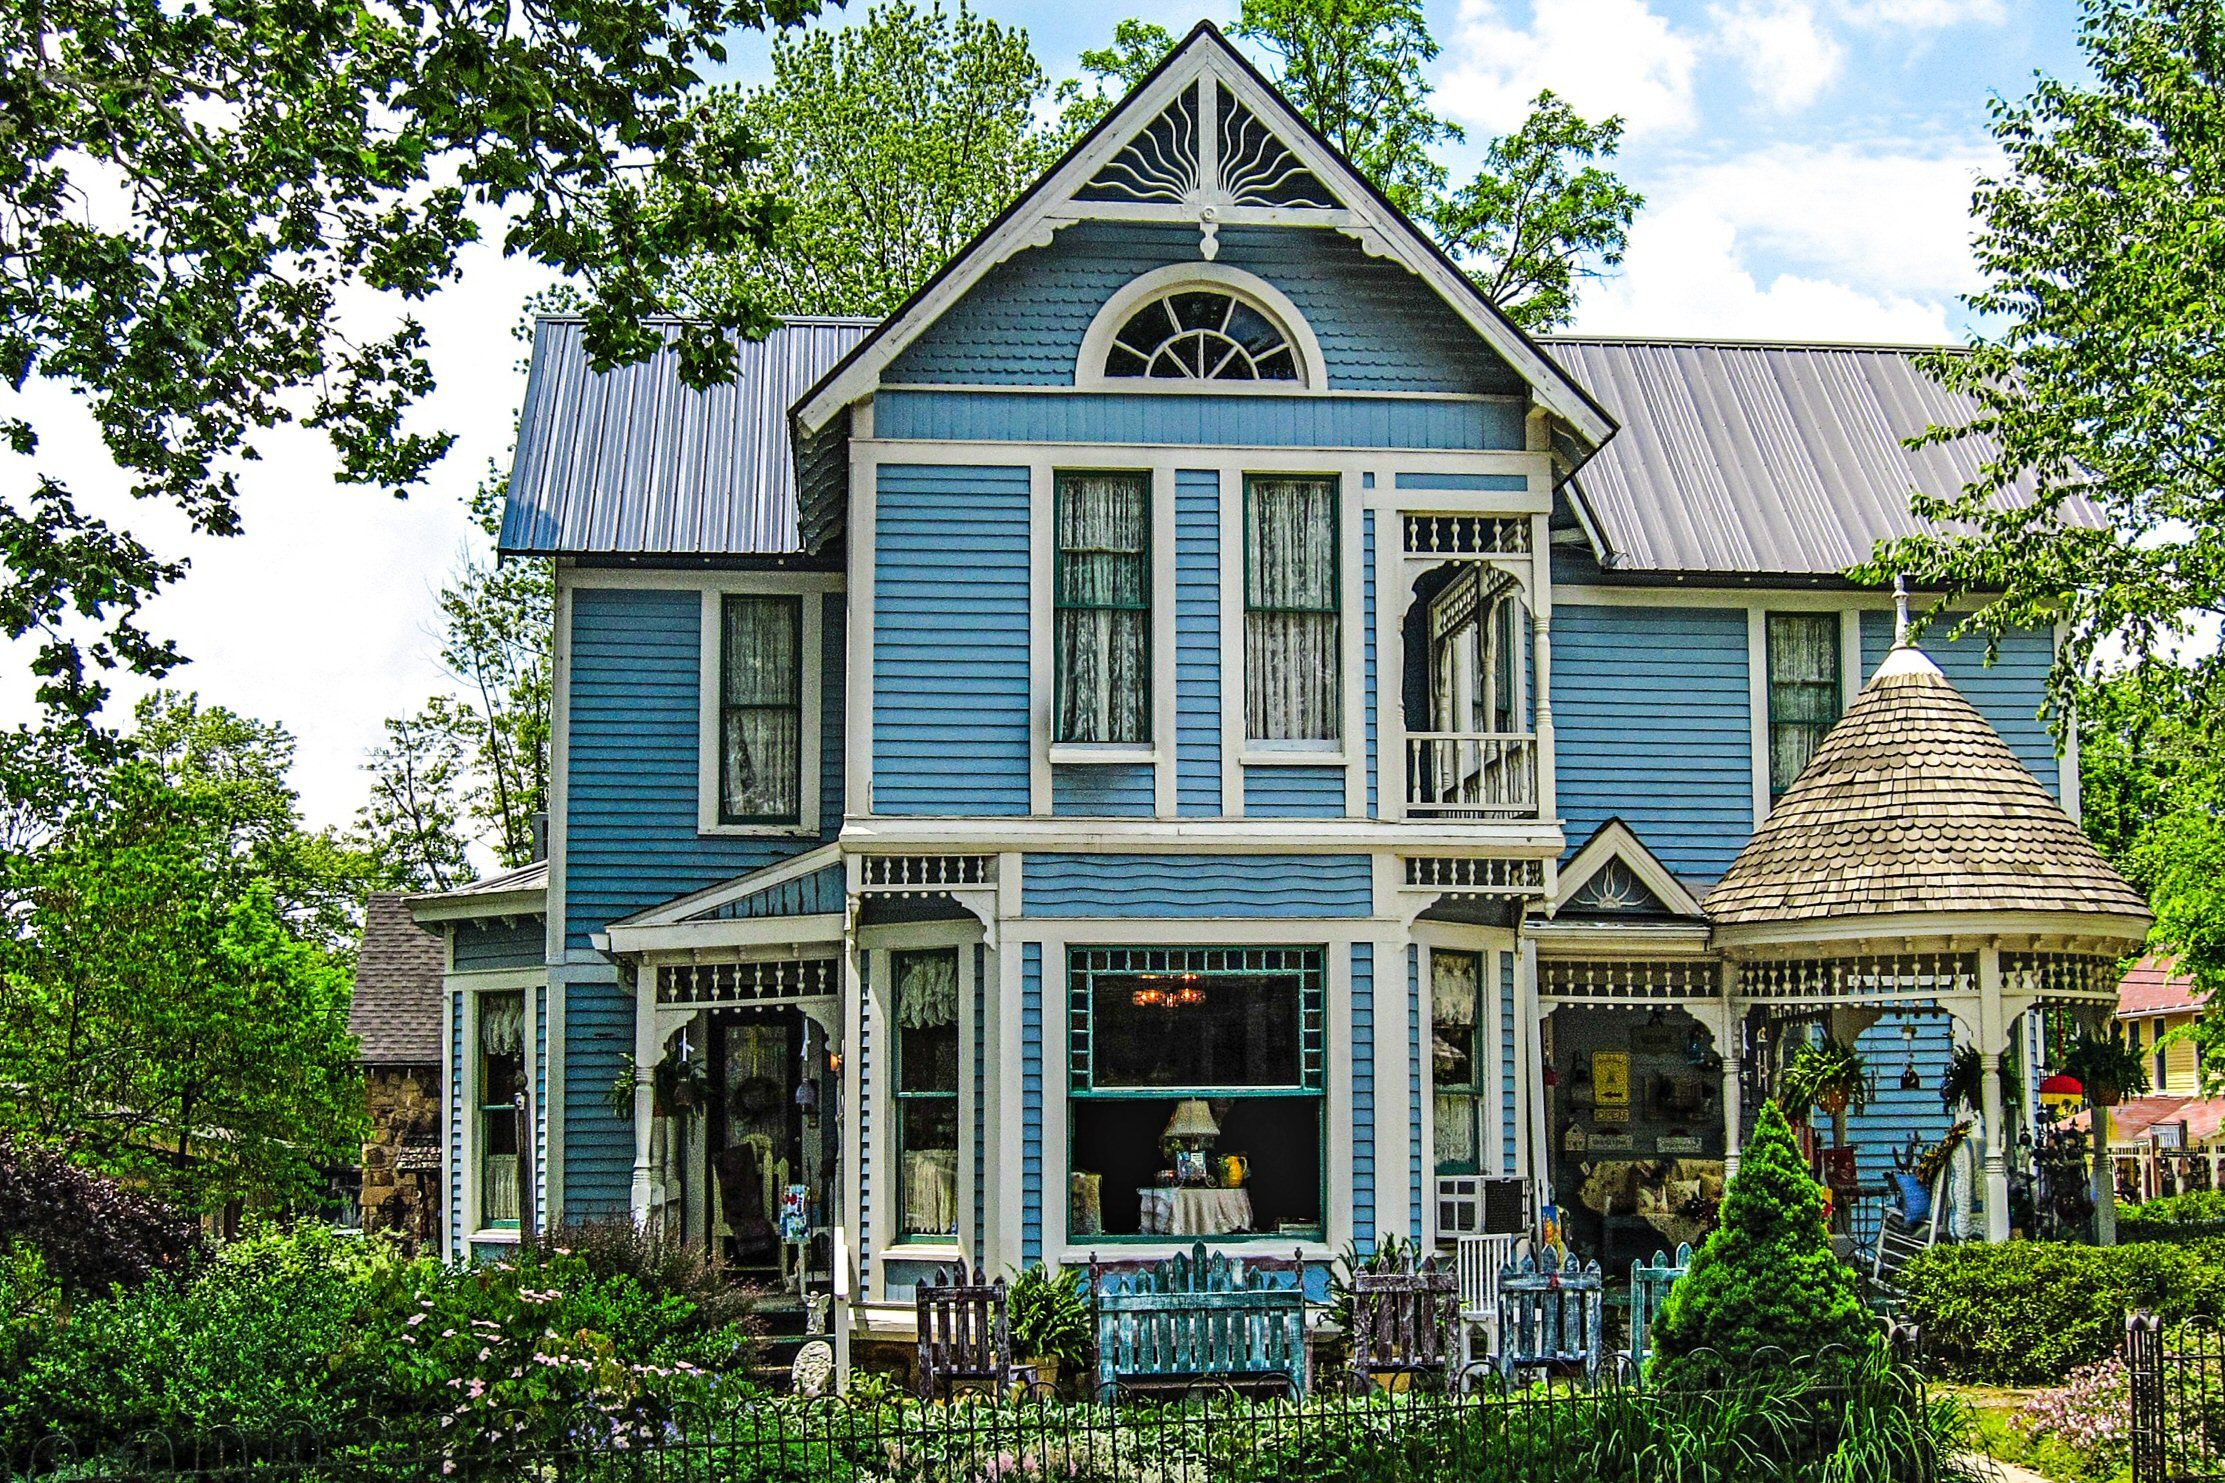 Houses Of Blue Photos To Inspire Your Next Paint Job - How-to-paint-a-victorian-style-home